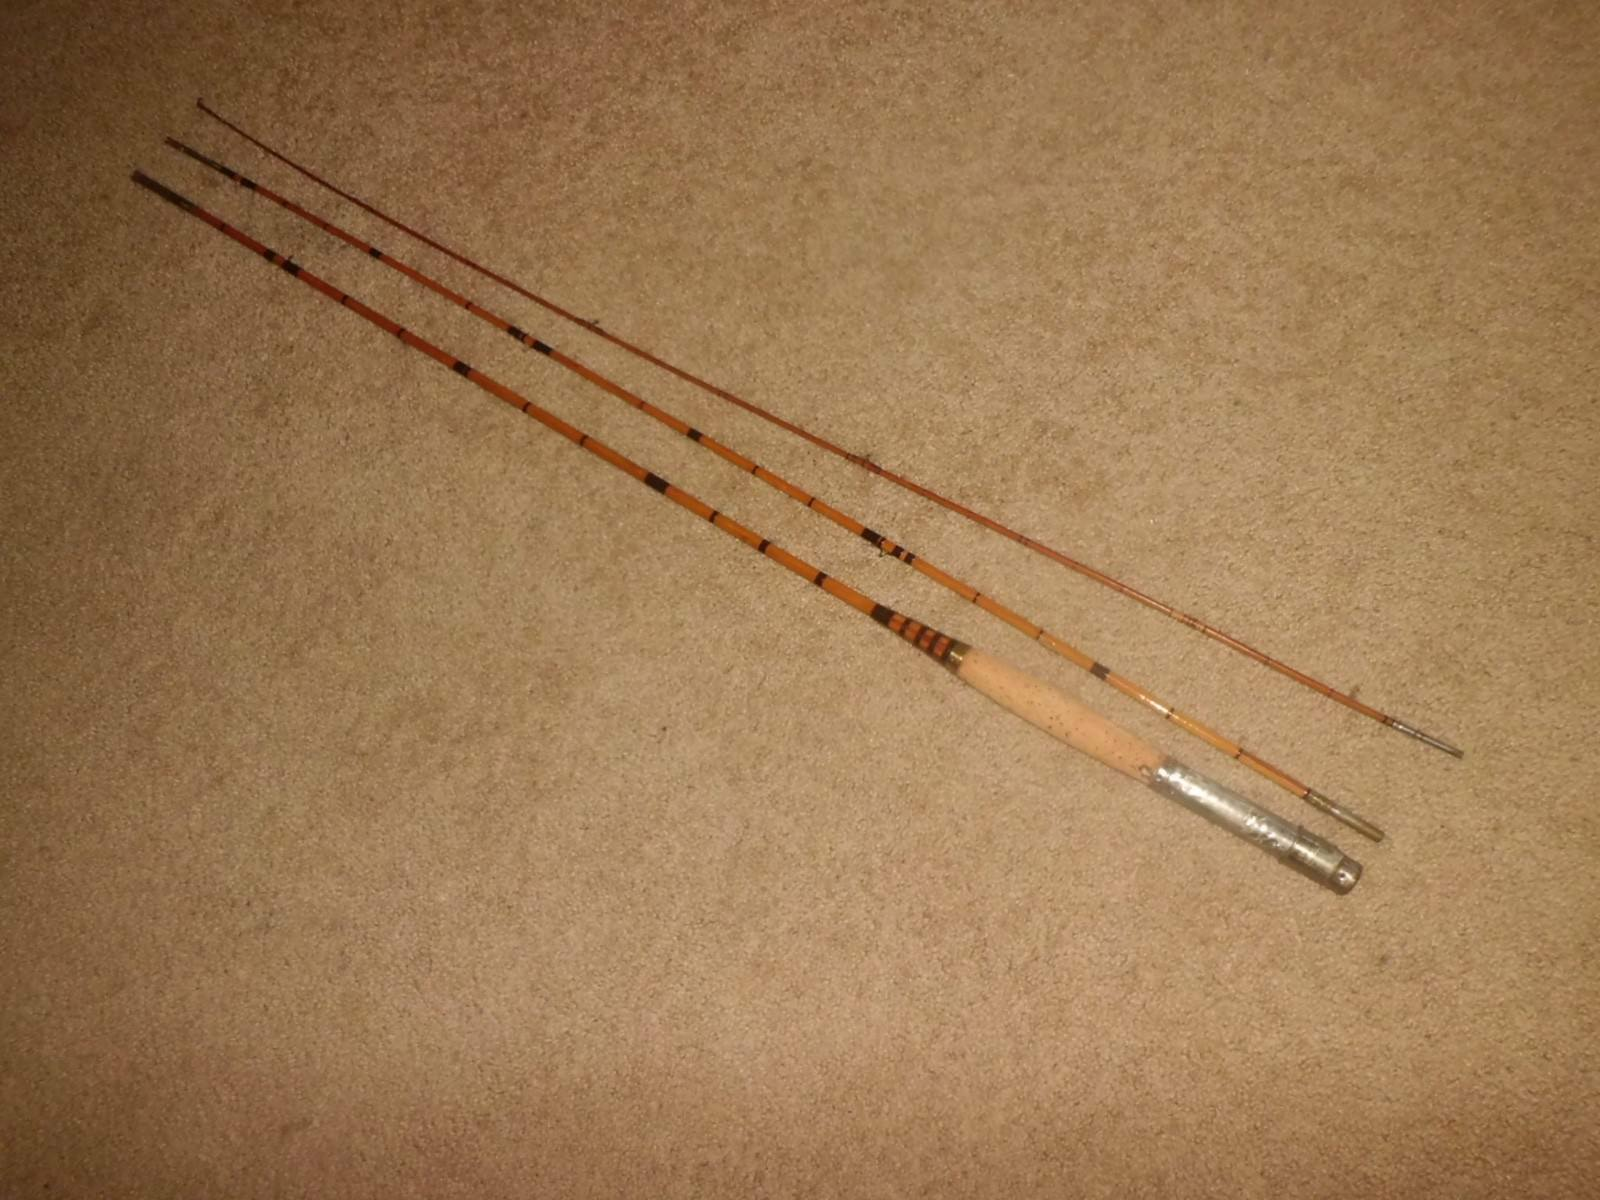 Vintage 3pc Bamboo Fly 9' Rod for Part Restoration Repair